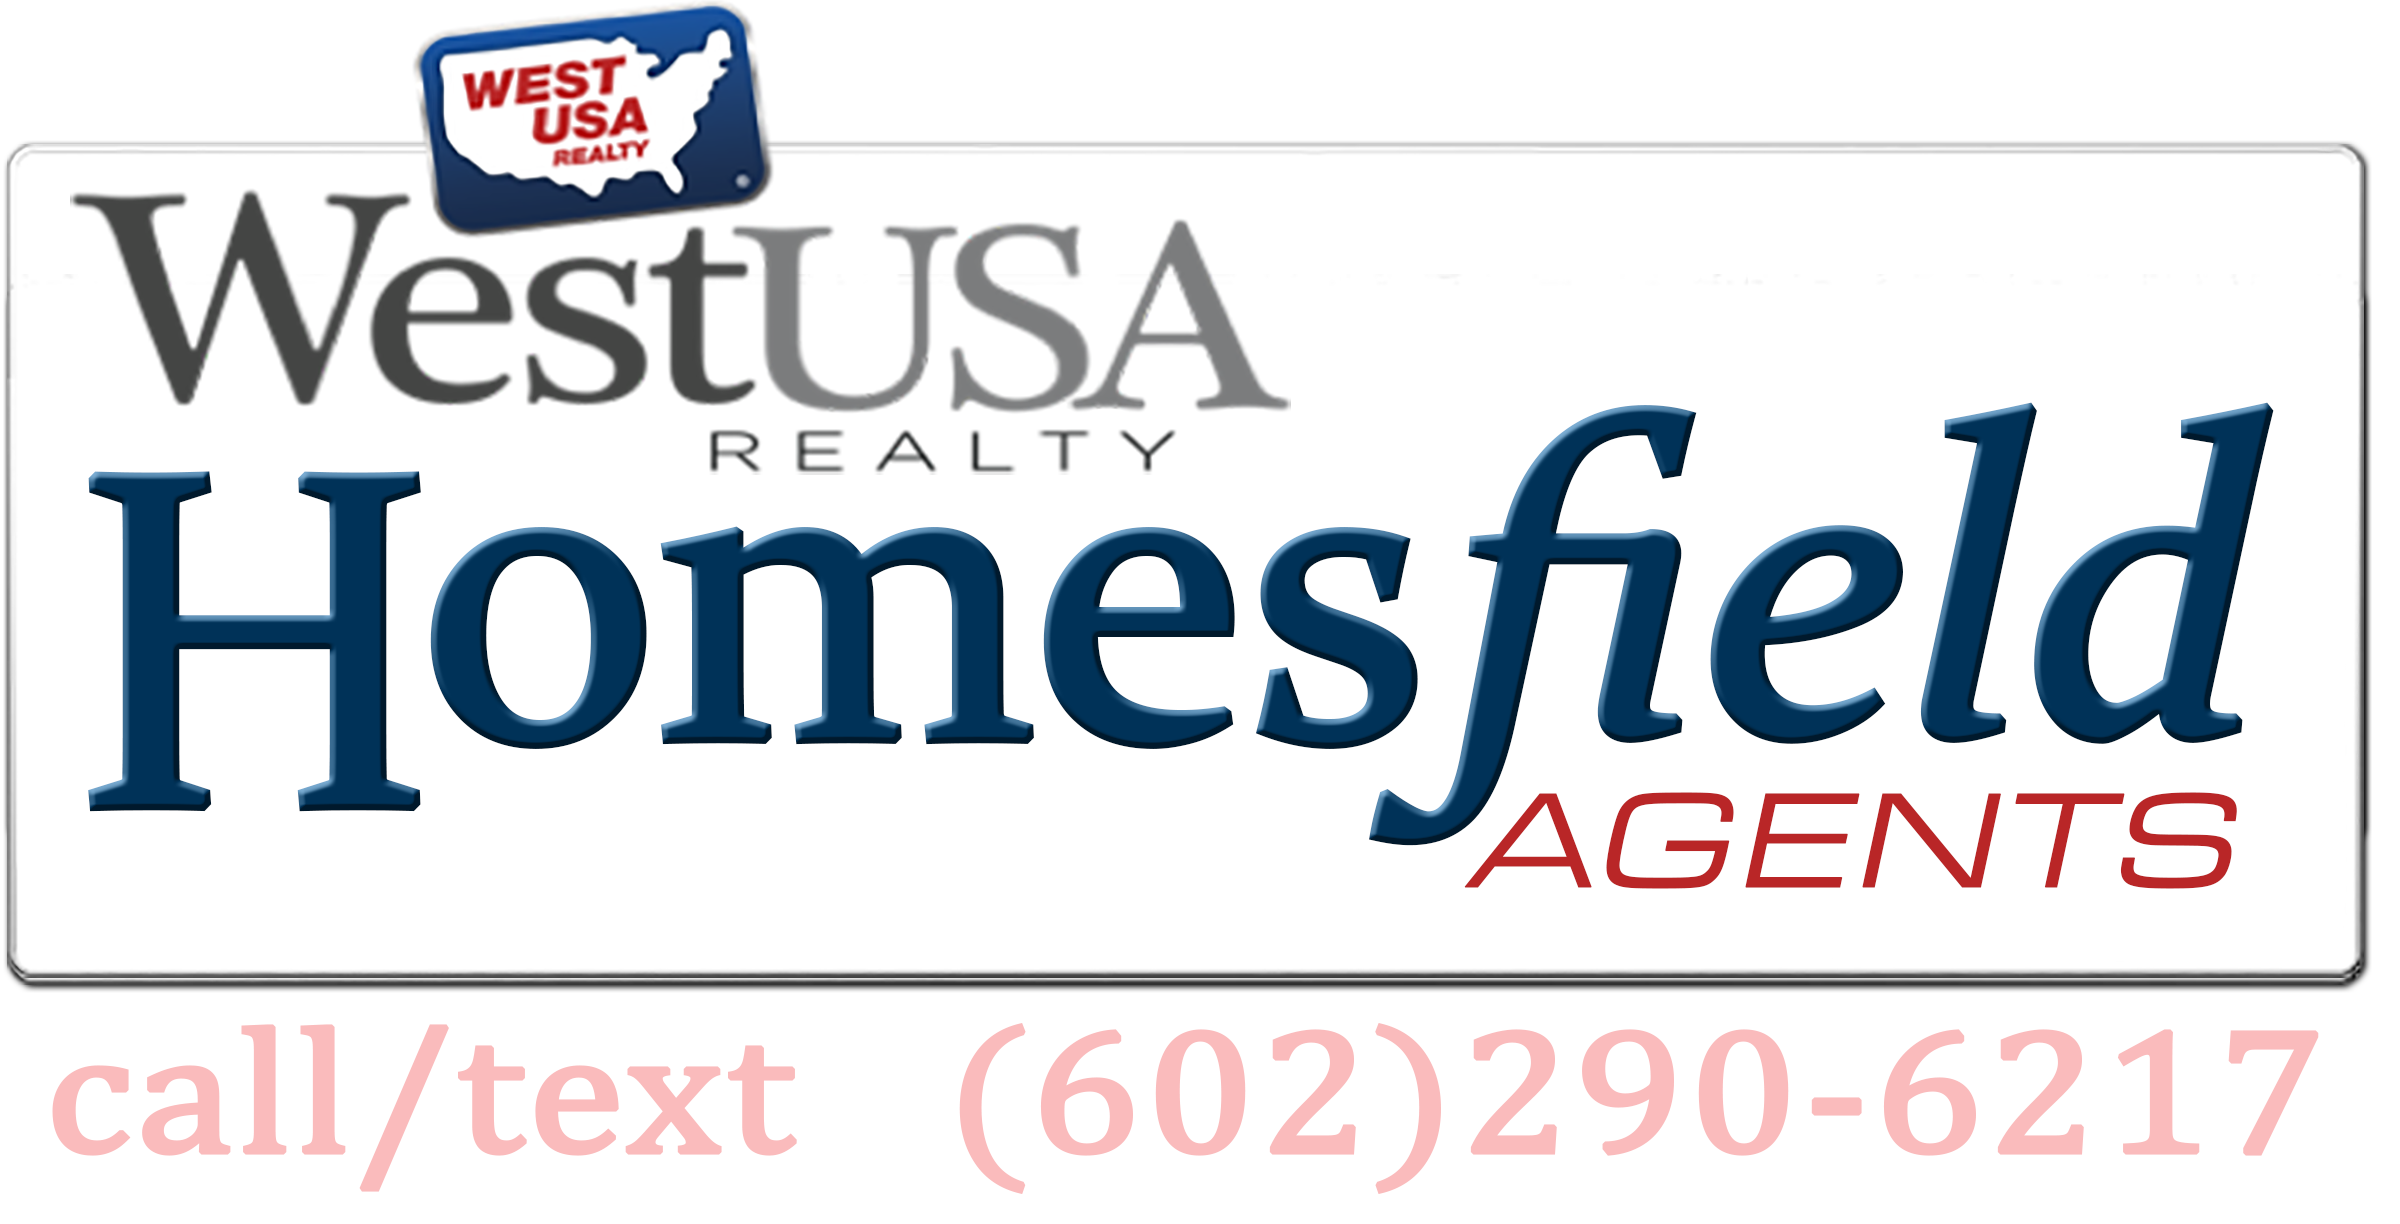 West USA Realty in Prescott and Prescott Valley